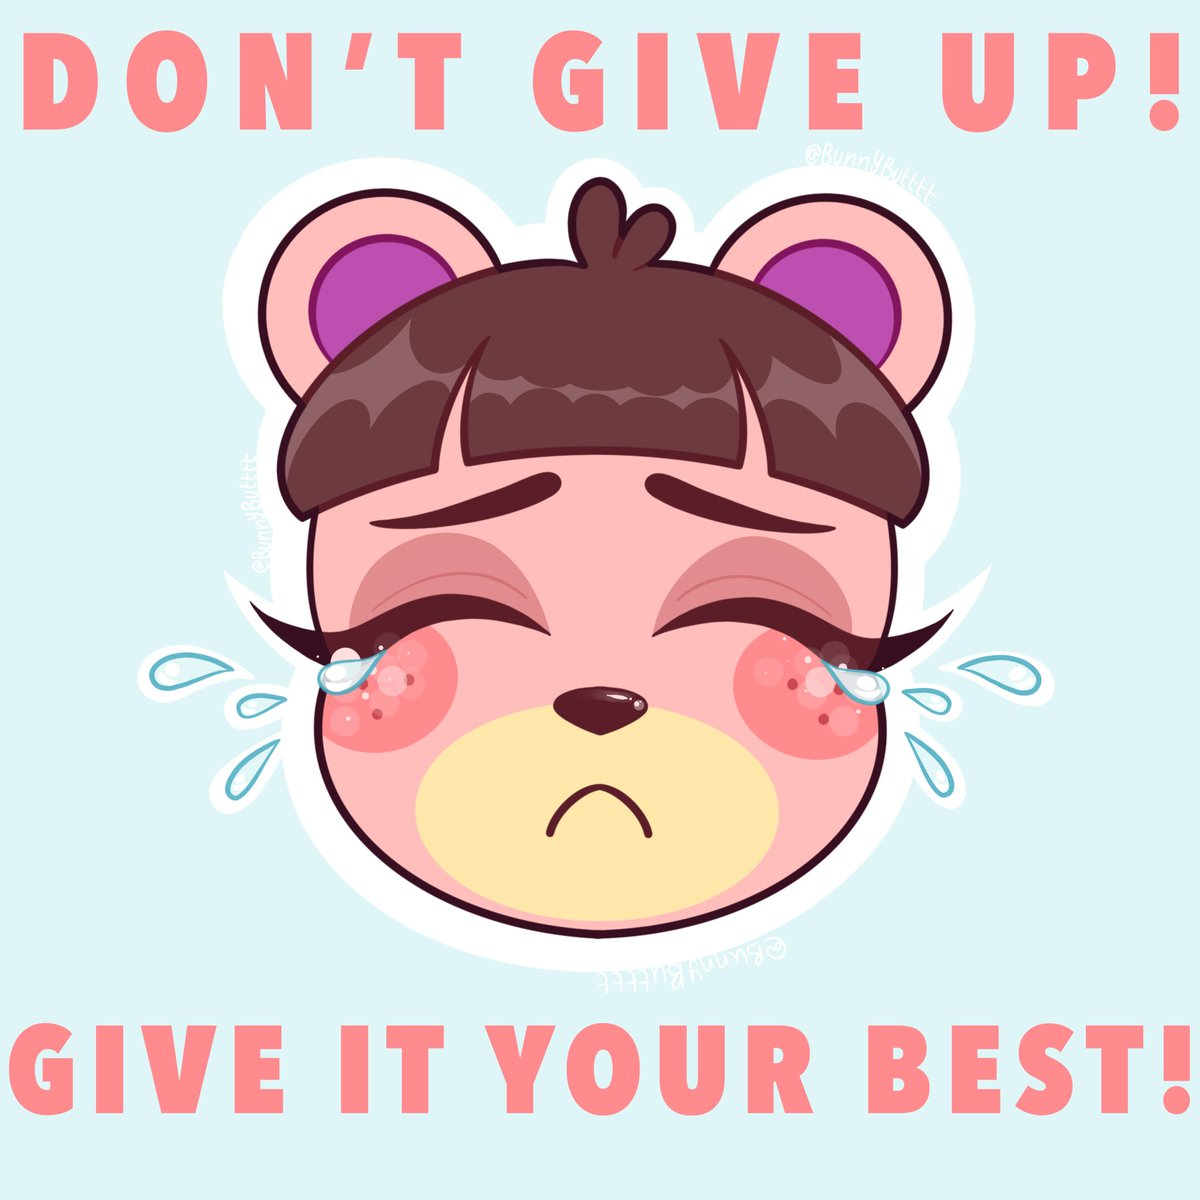 For anyone who needs to hear it #ursala #animalcrossing #animalcrossingnewhorizons #ursalaacnh #villagers #acnh #acnhvillager #dontgiveup #ganbatte #digitalart #art #cuteart #acnhfanartpic.twitter.com/8Xing0itxW